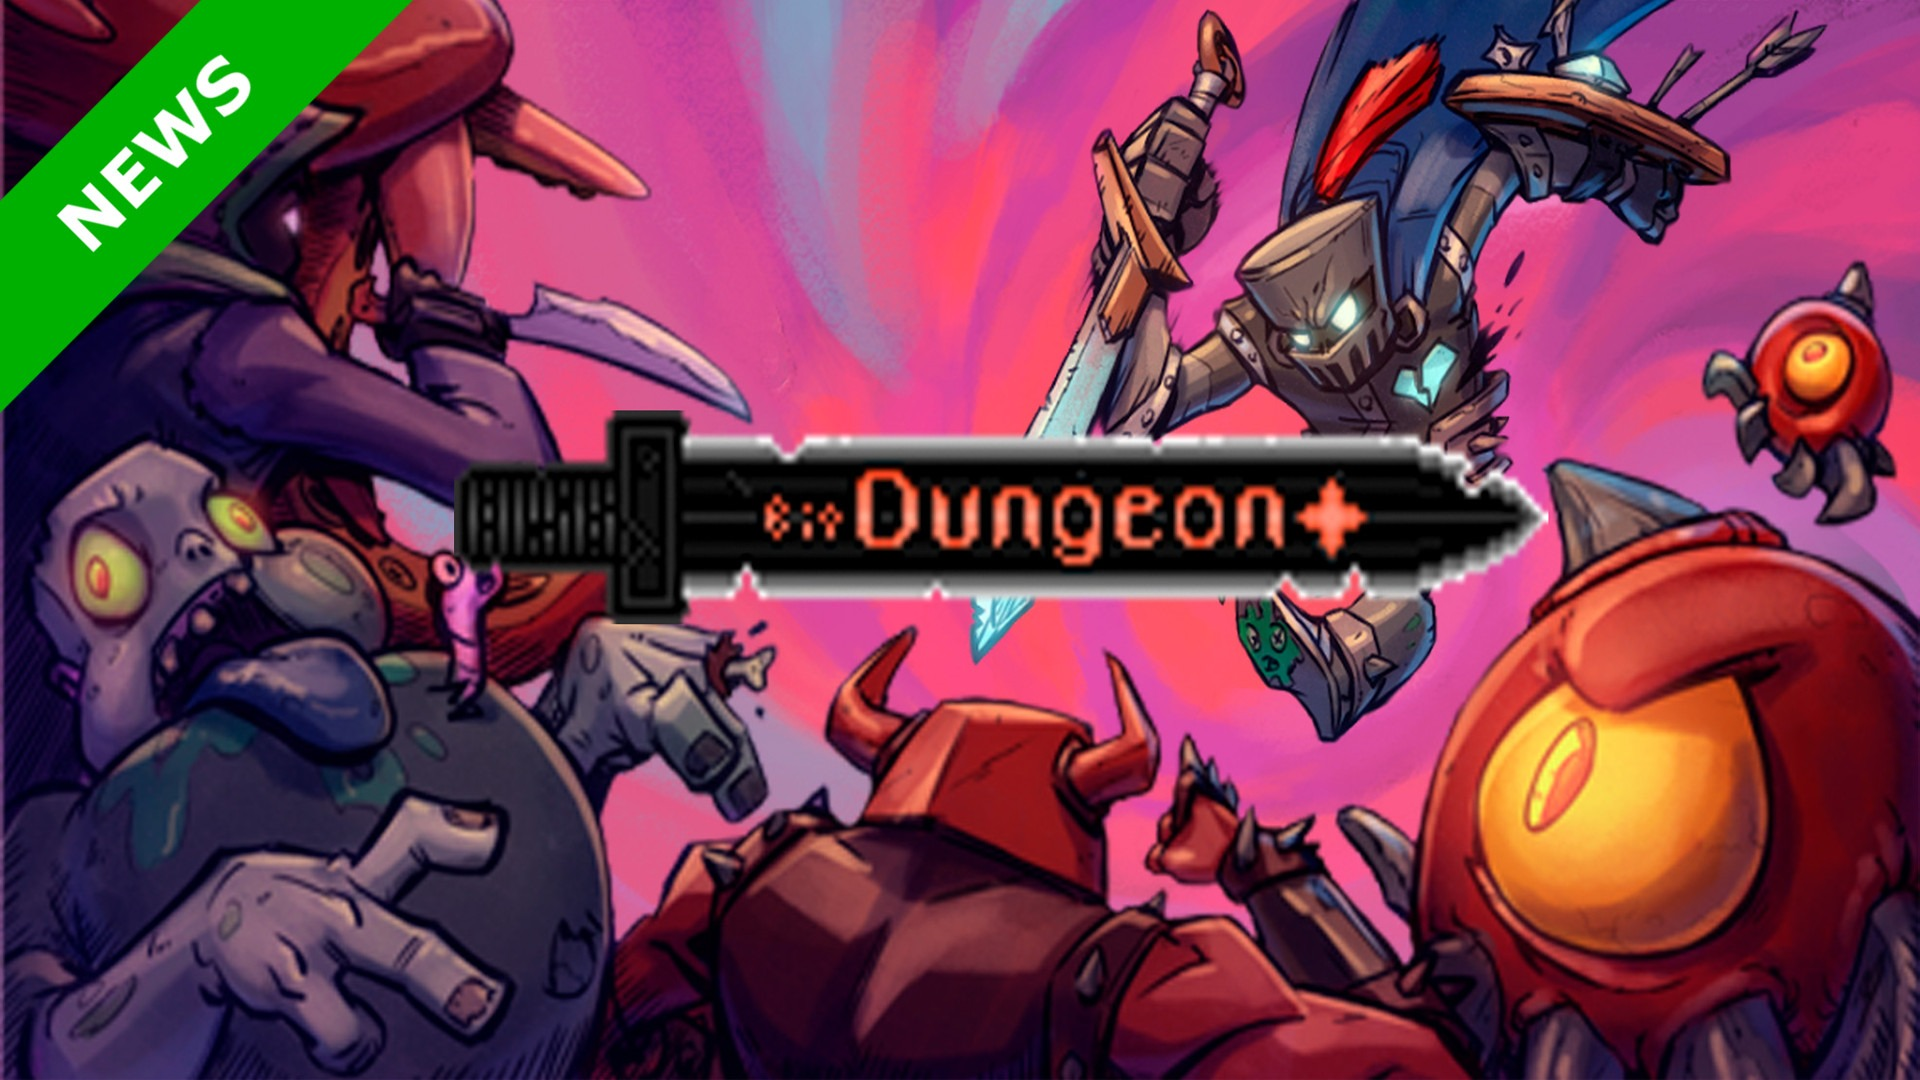 Bit Dungeon Plus -XWFR